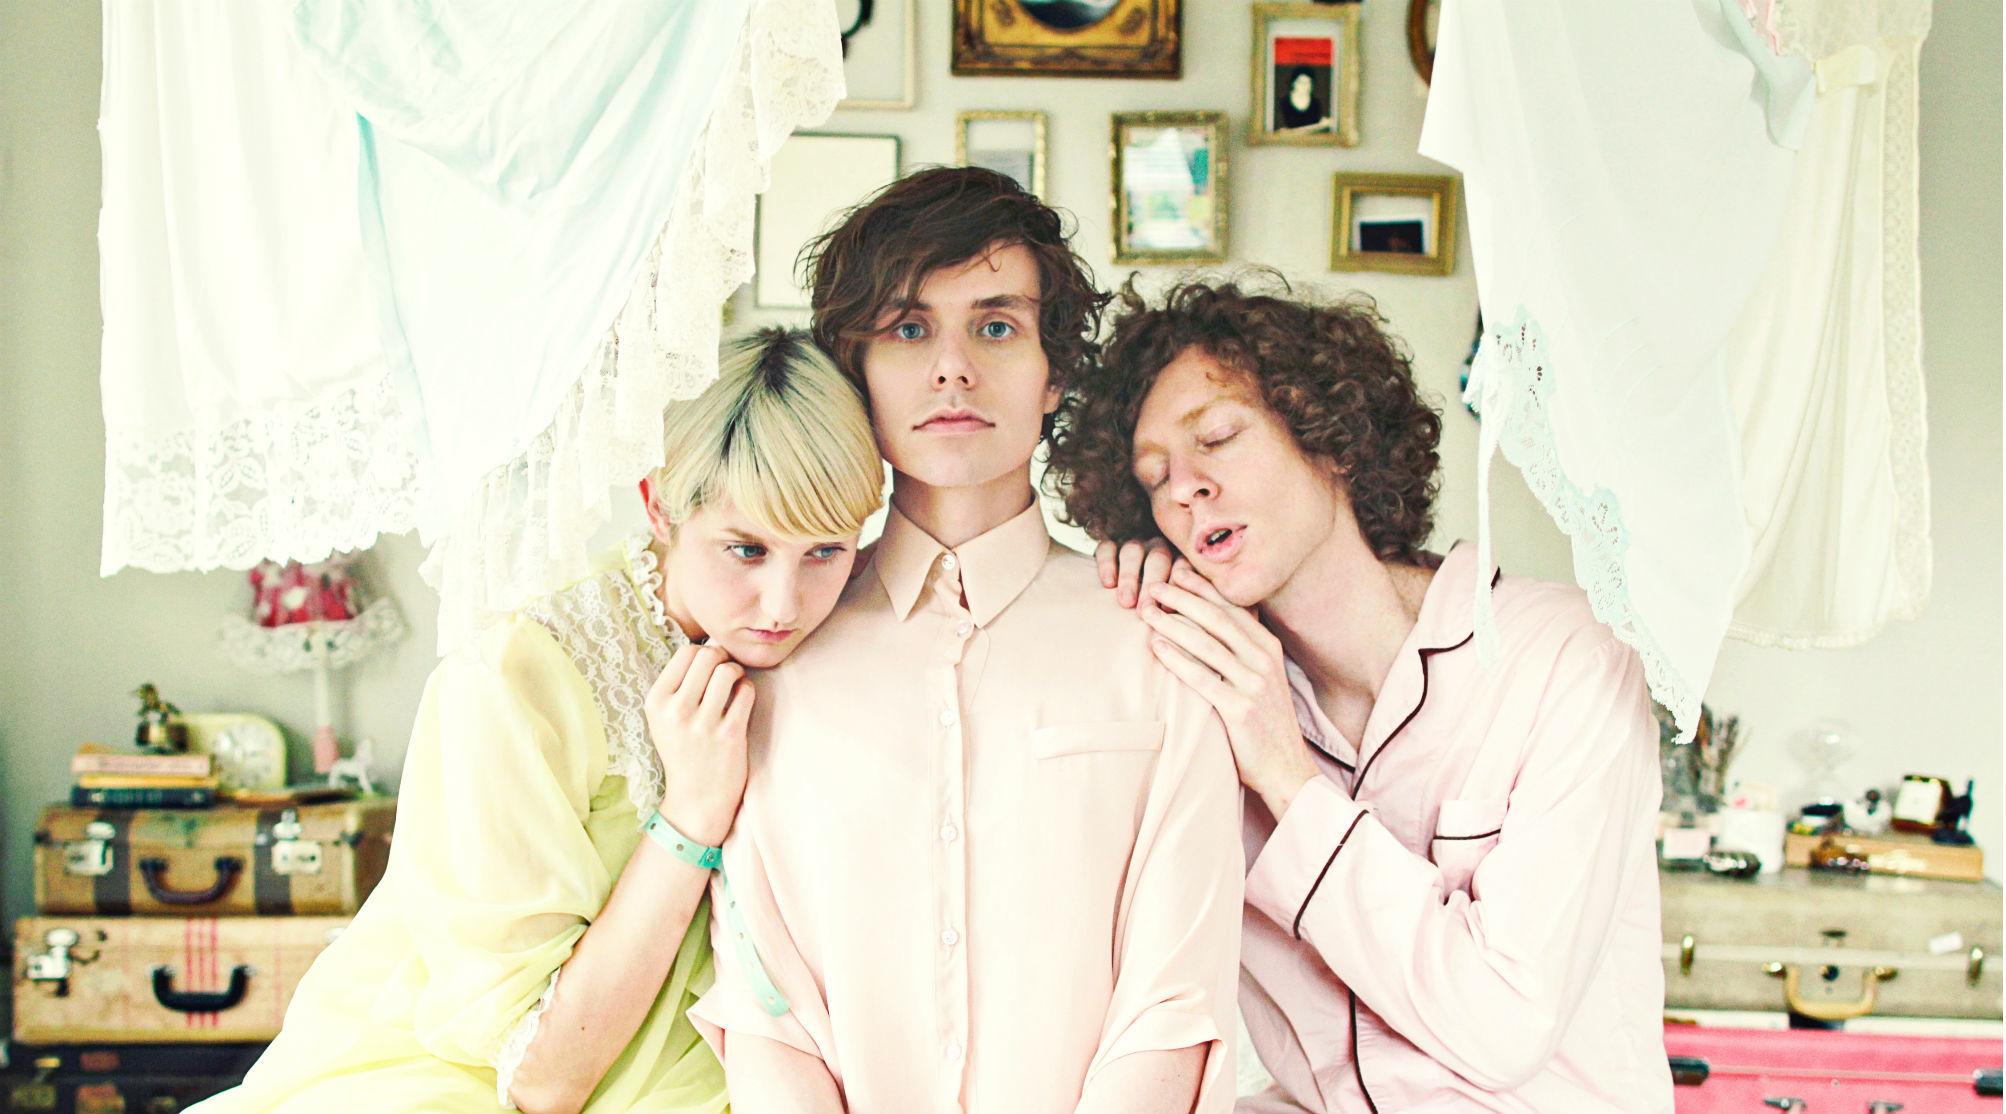 Zac - Parenthetical Girls